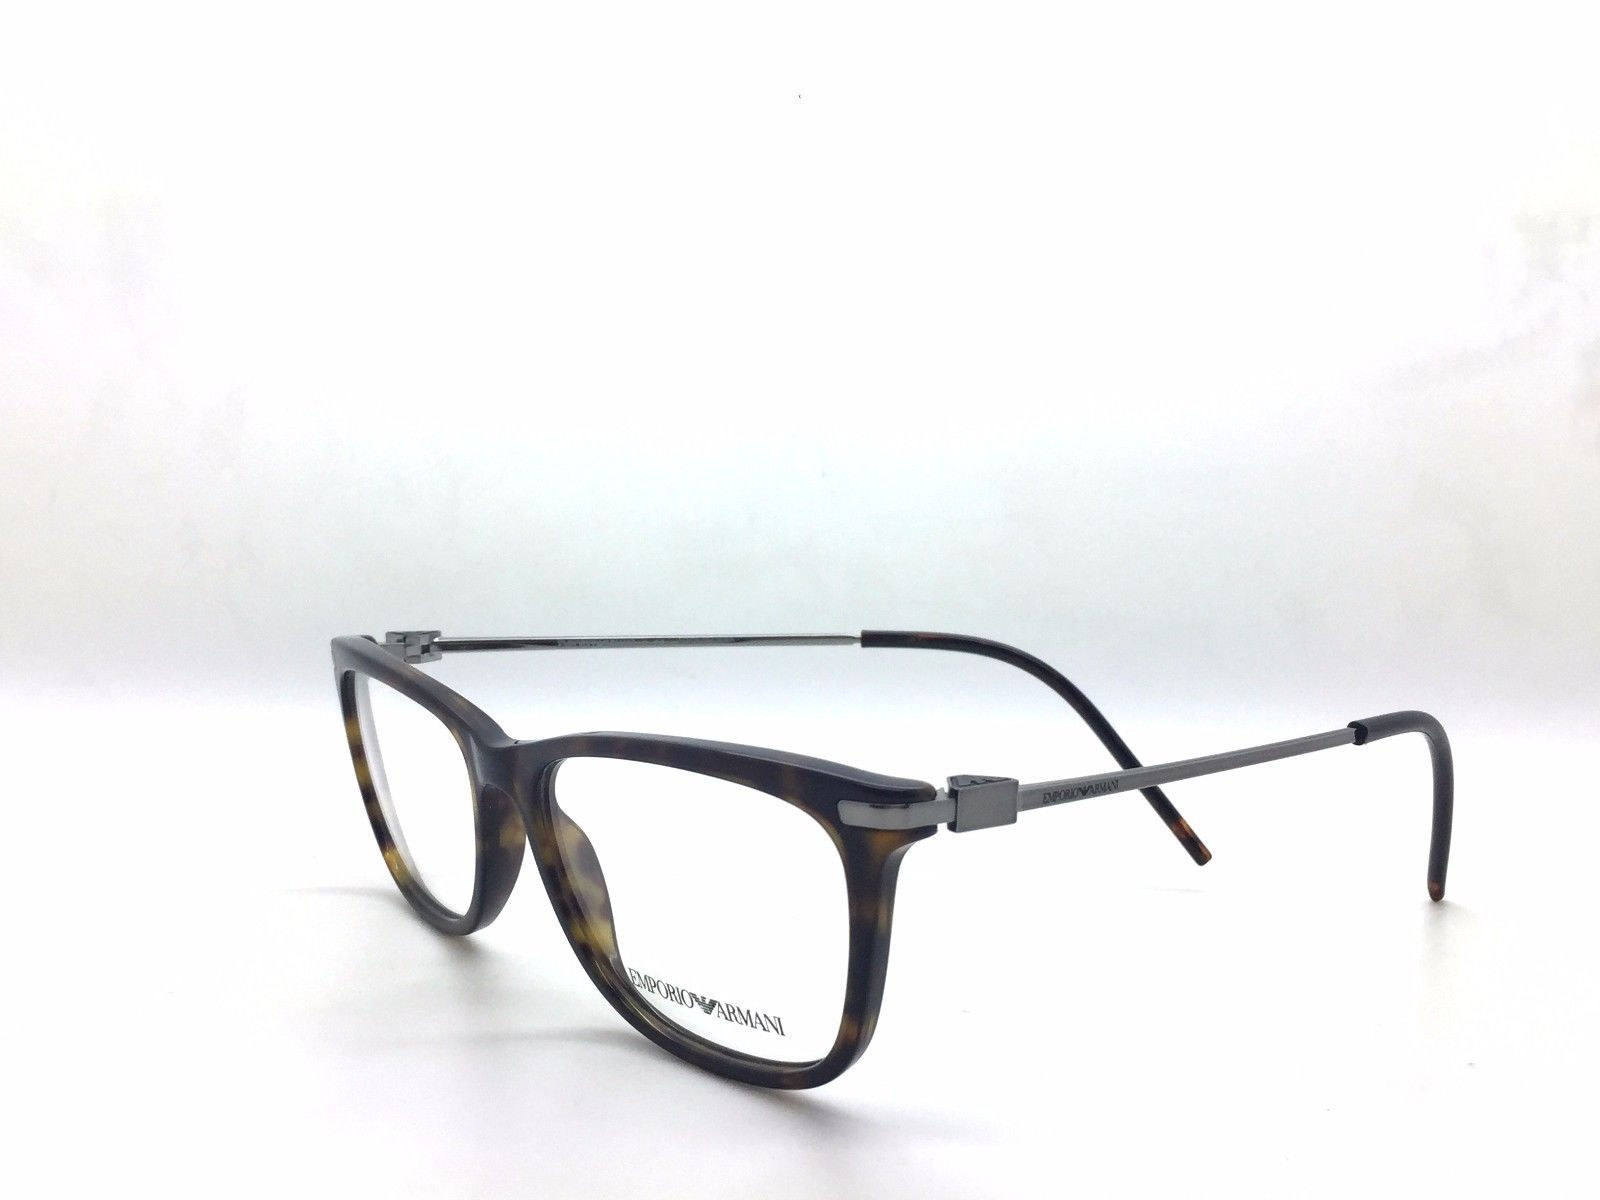 5911f4d1d8 EMPORIO ARMANI Havana Eyeglasses EA 3062 5026 100% Authentic! NEW!